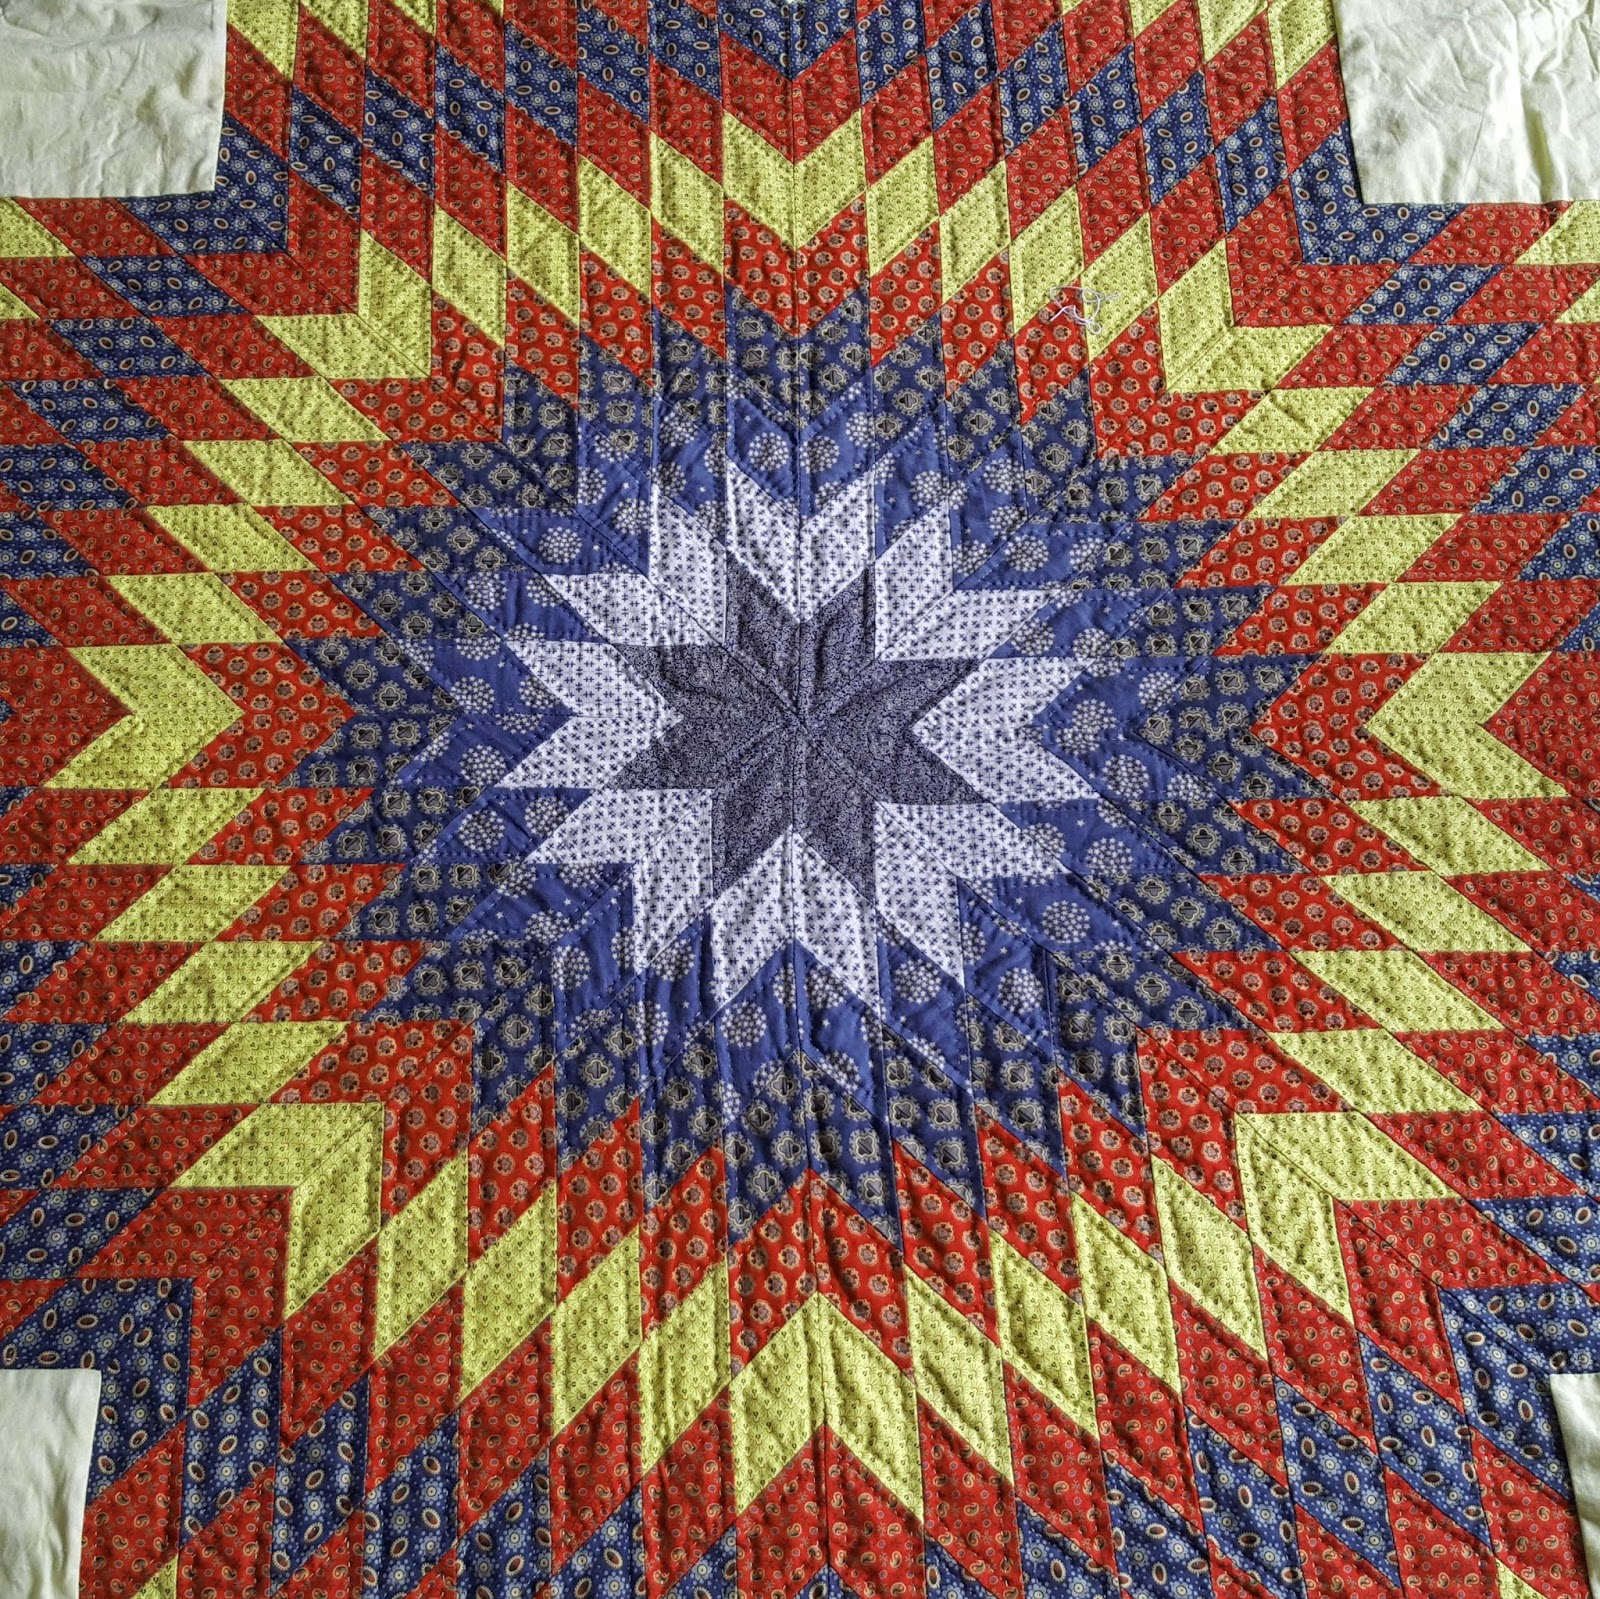 Quilting Pattern For Lone Star : third floor quilts: Lone Star vintage quilt